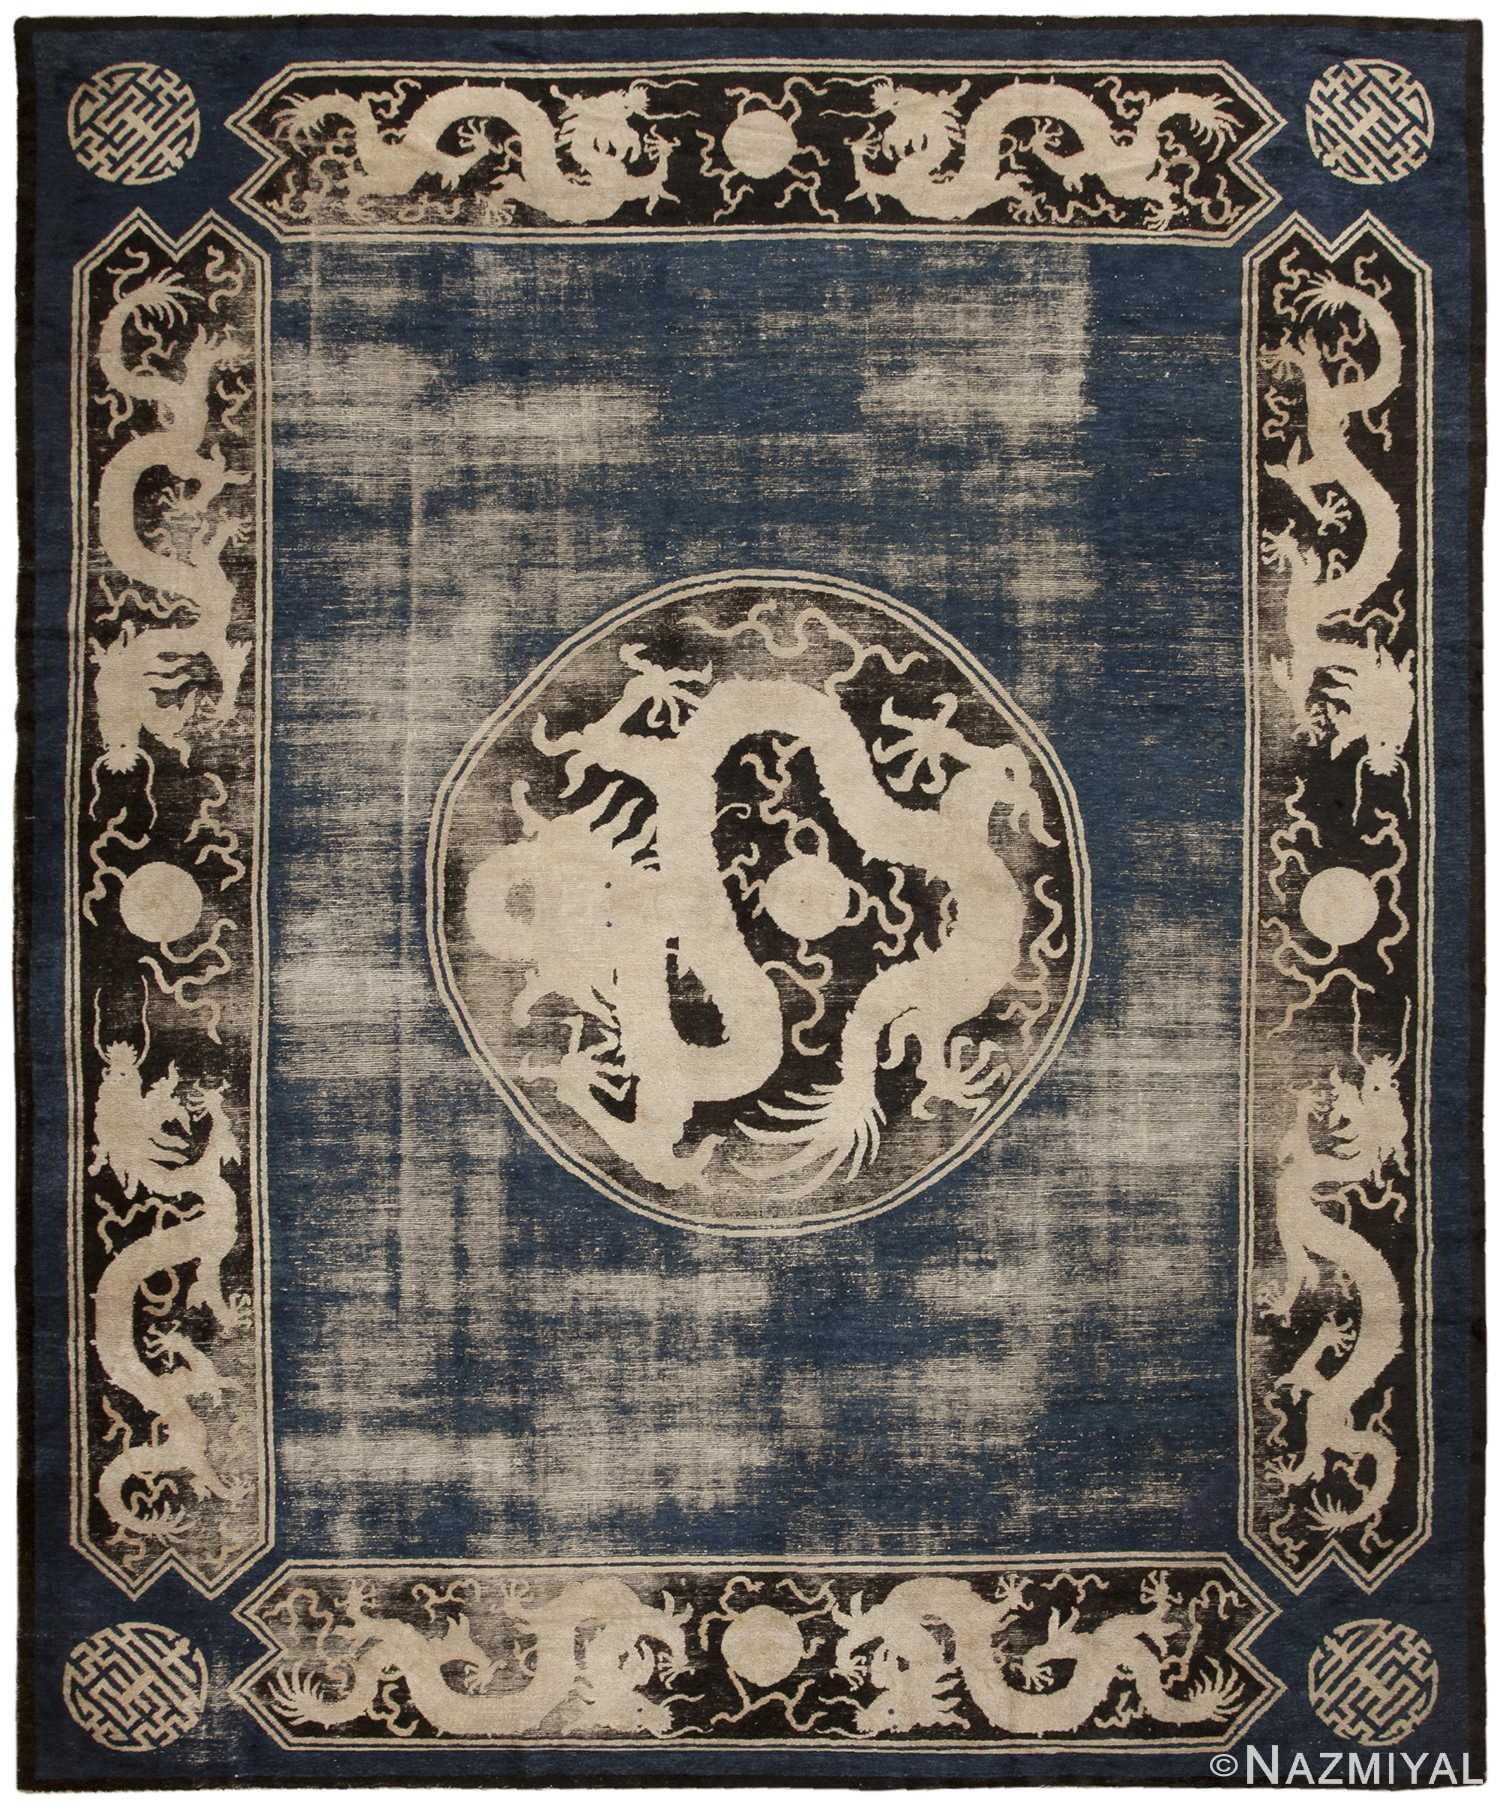 Antique Chinese Rug: Antique Ningsia Carpet From China 467087 By Nazmiyal